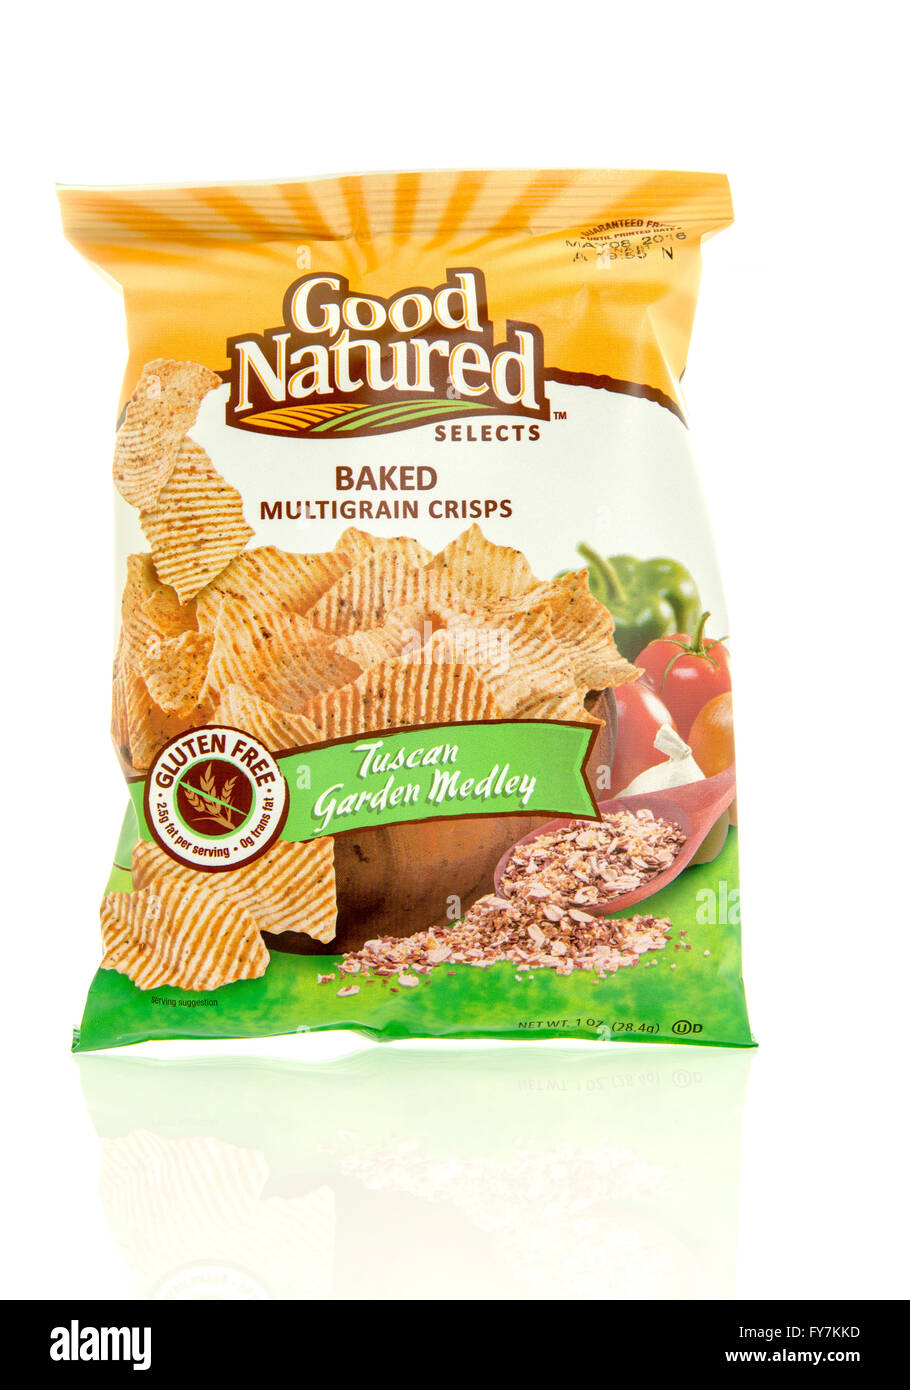 Winneconne, WI - 17 Feb 2016: Bag of Good Natured Selects baked  chips in tuscan garden medley flavor. - Stock Image